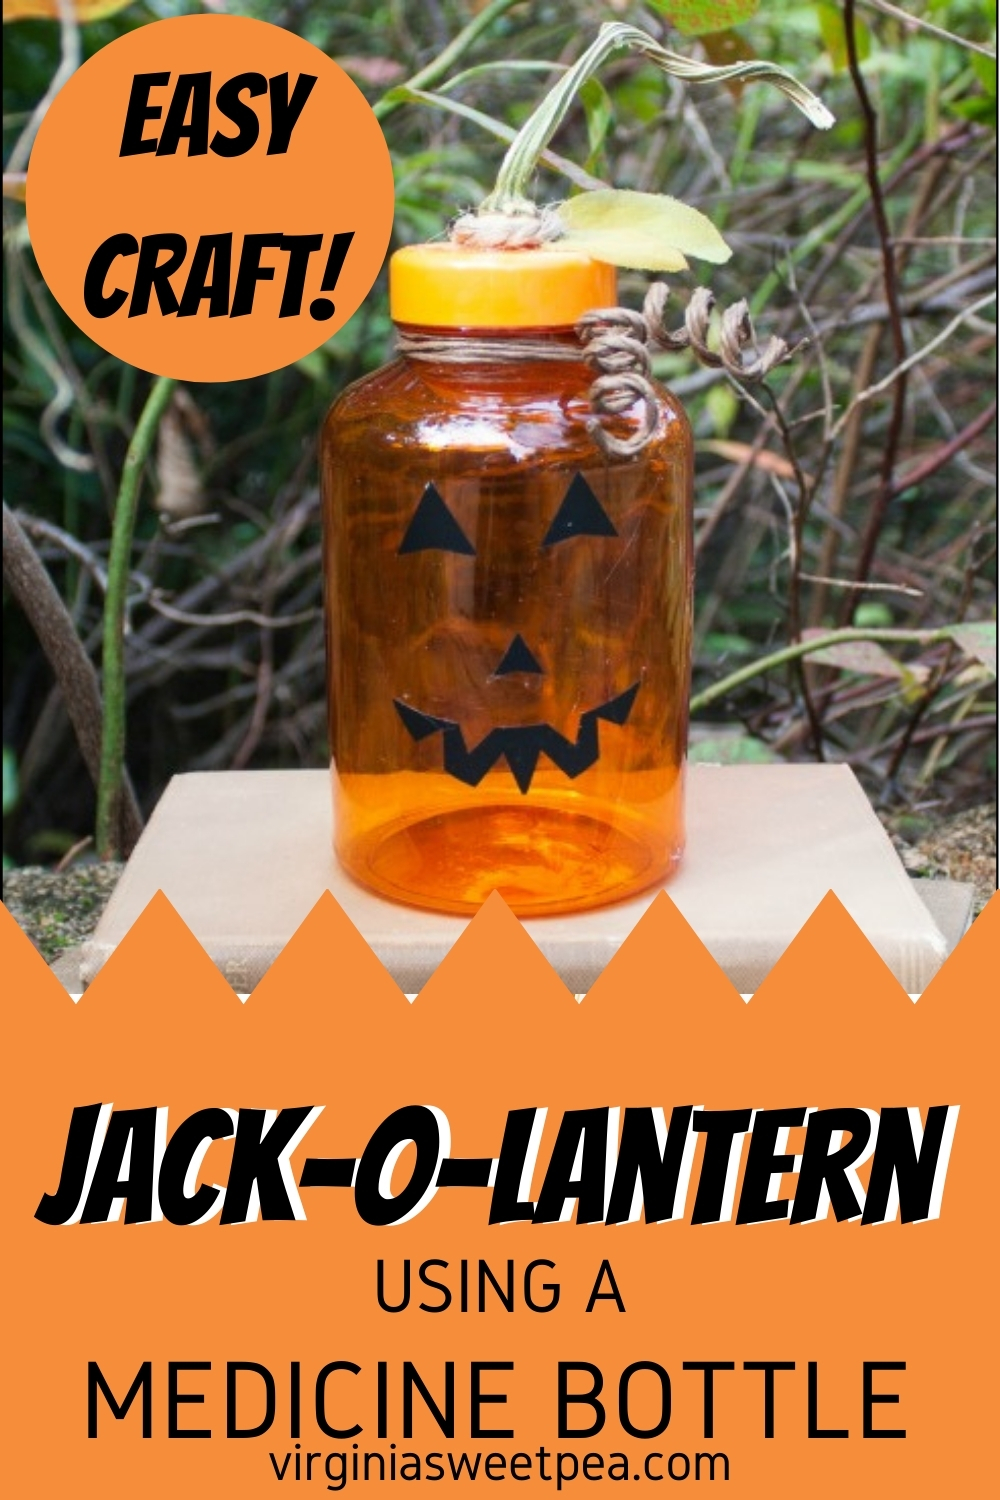 Use an upcycled medicine bottle to make a Jack-o-Lantern for Halloween decor. #Halloween #Halloweencraft #craft #upcycle #craftidea #fallcraft via @spaula